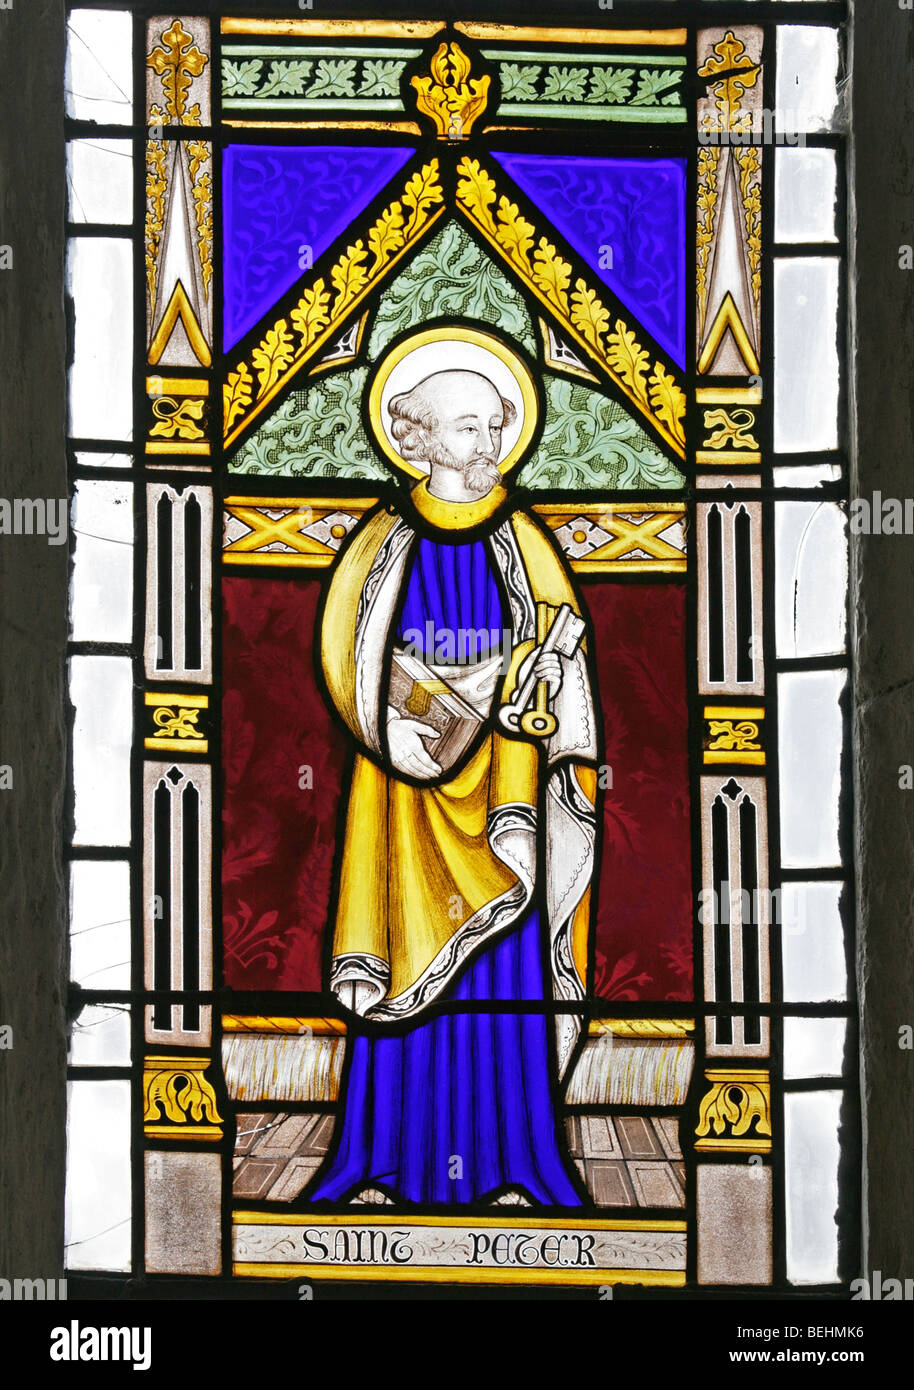 A stained glass window depicting St Peter the Apostle holding the keys to Heaven, All Saints Church, Wighton, Norfolk - Stock Image